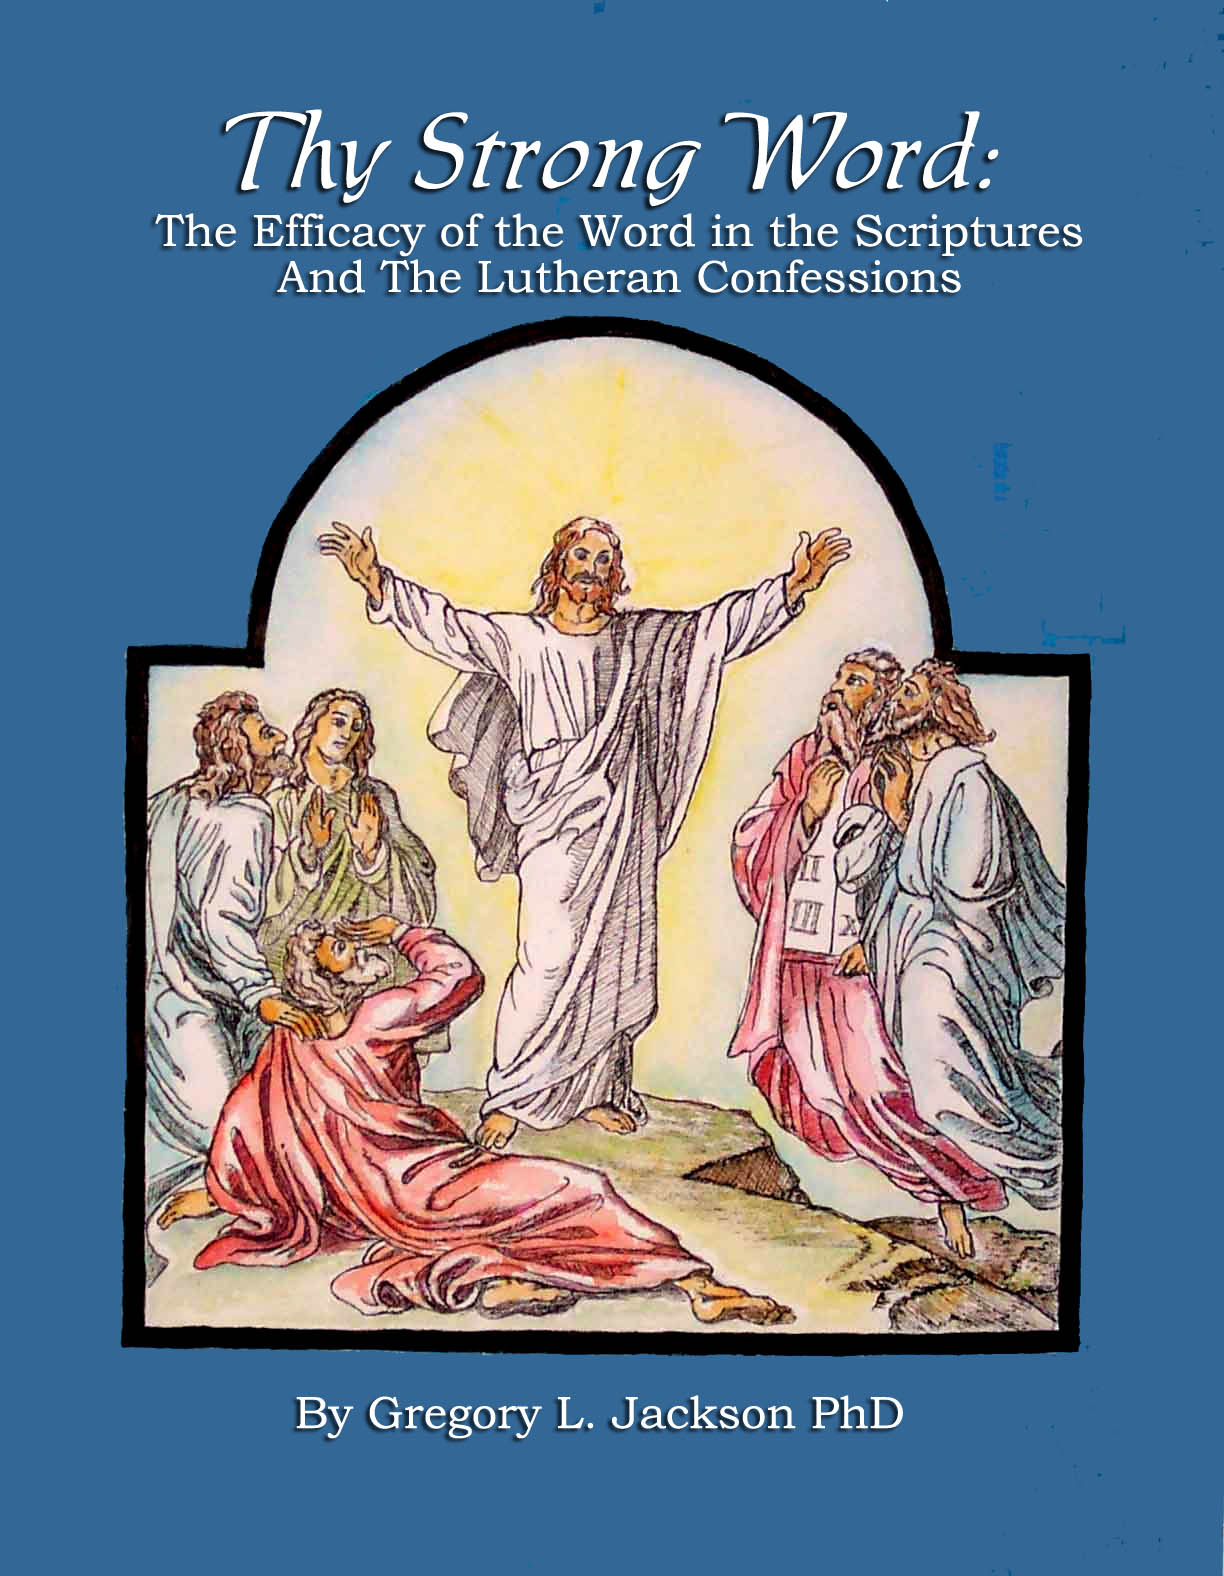 an overview of the lutheran orthodoxy and pietism Eric w gritsch, a history of lutheranism (minneapolis, fortress press, 2002) the first thing you need to do with this book is to take its title seriously.